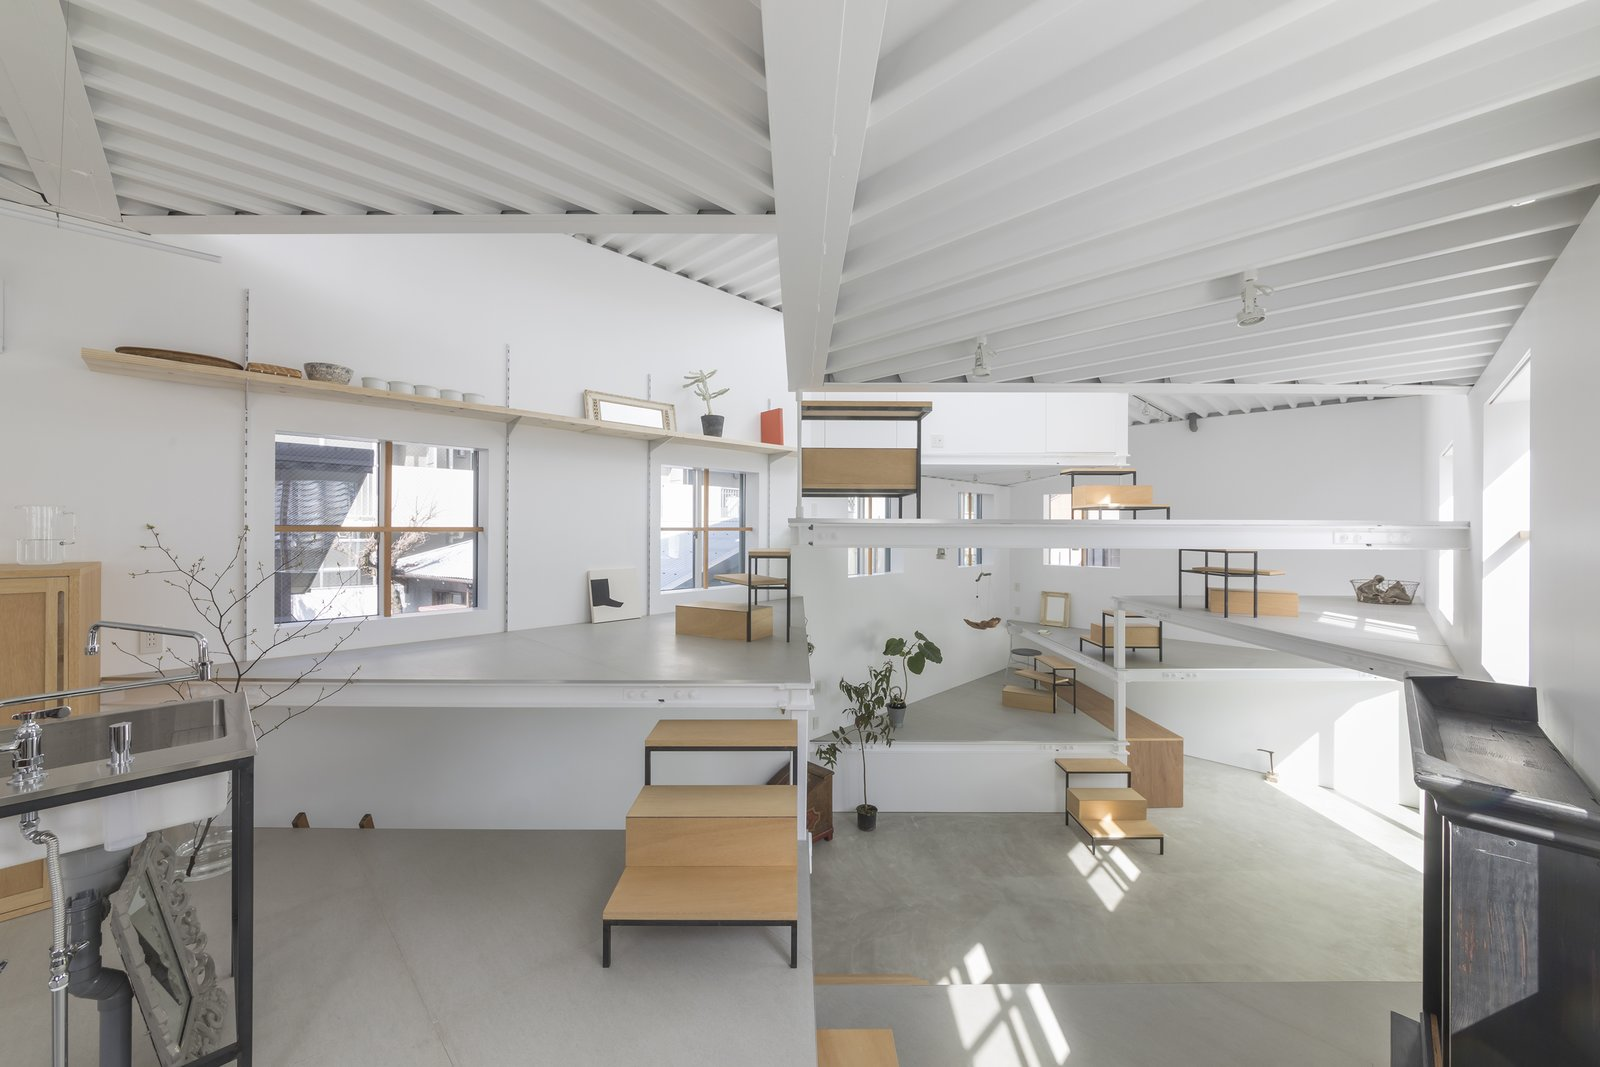 13 Spiraling Platforms Increase Space And Connection In This One Room Home